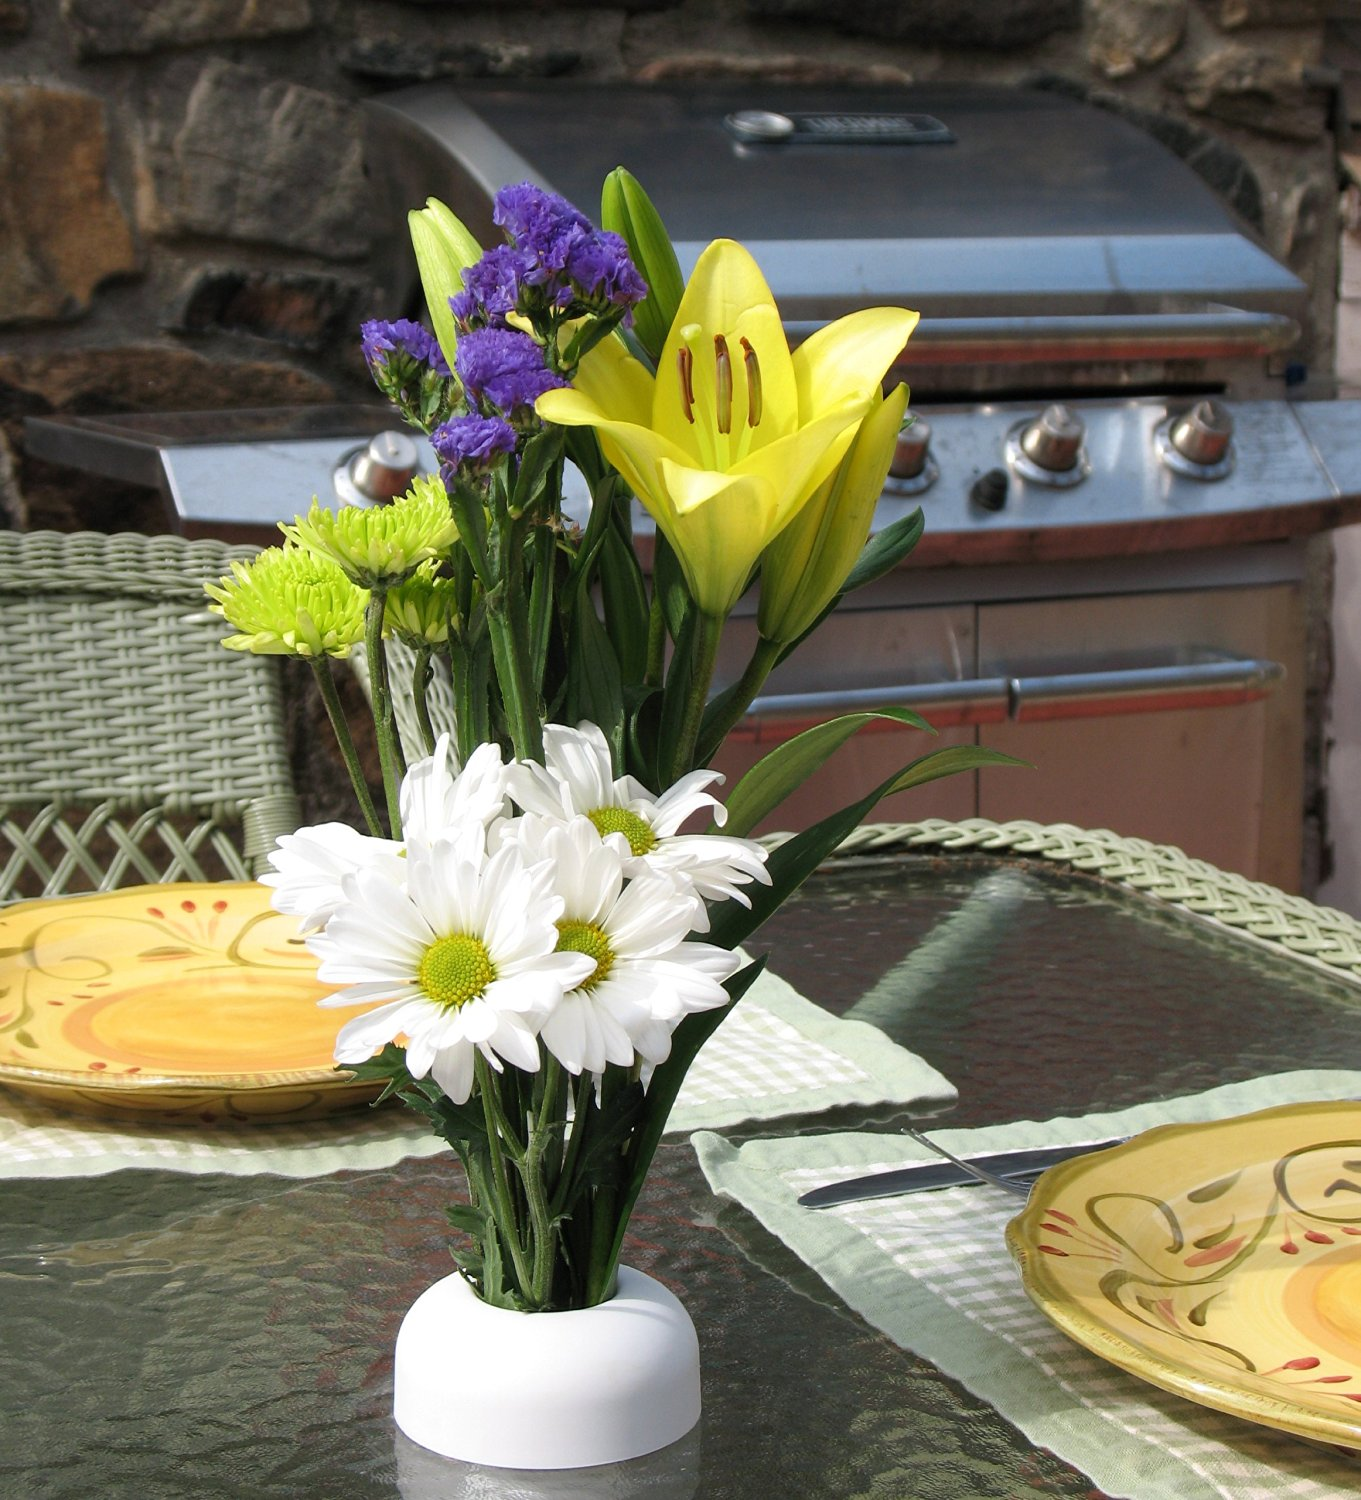 Patio Table Umbrella Hole Insert - The NoBrella Flower Vase provides a quick and easy way to decorate the Umbrella Hole Ring Set in your patio table. & Buy Patio Table Umbrella Hole Insert - The NoBrella Flower Vase ...